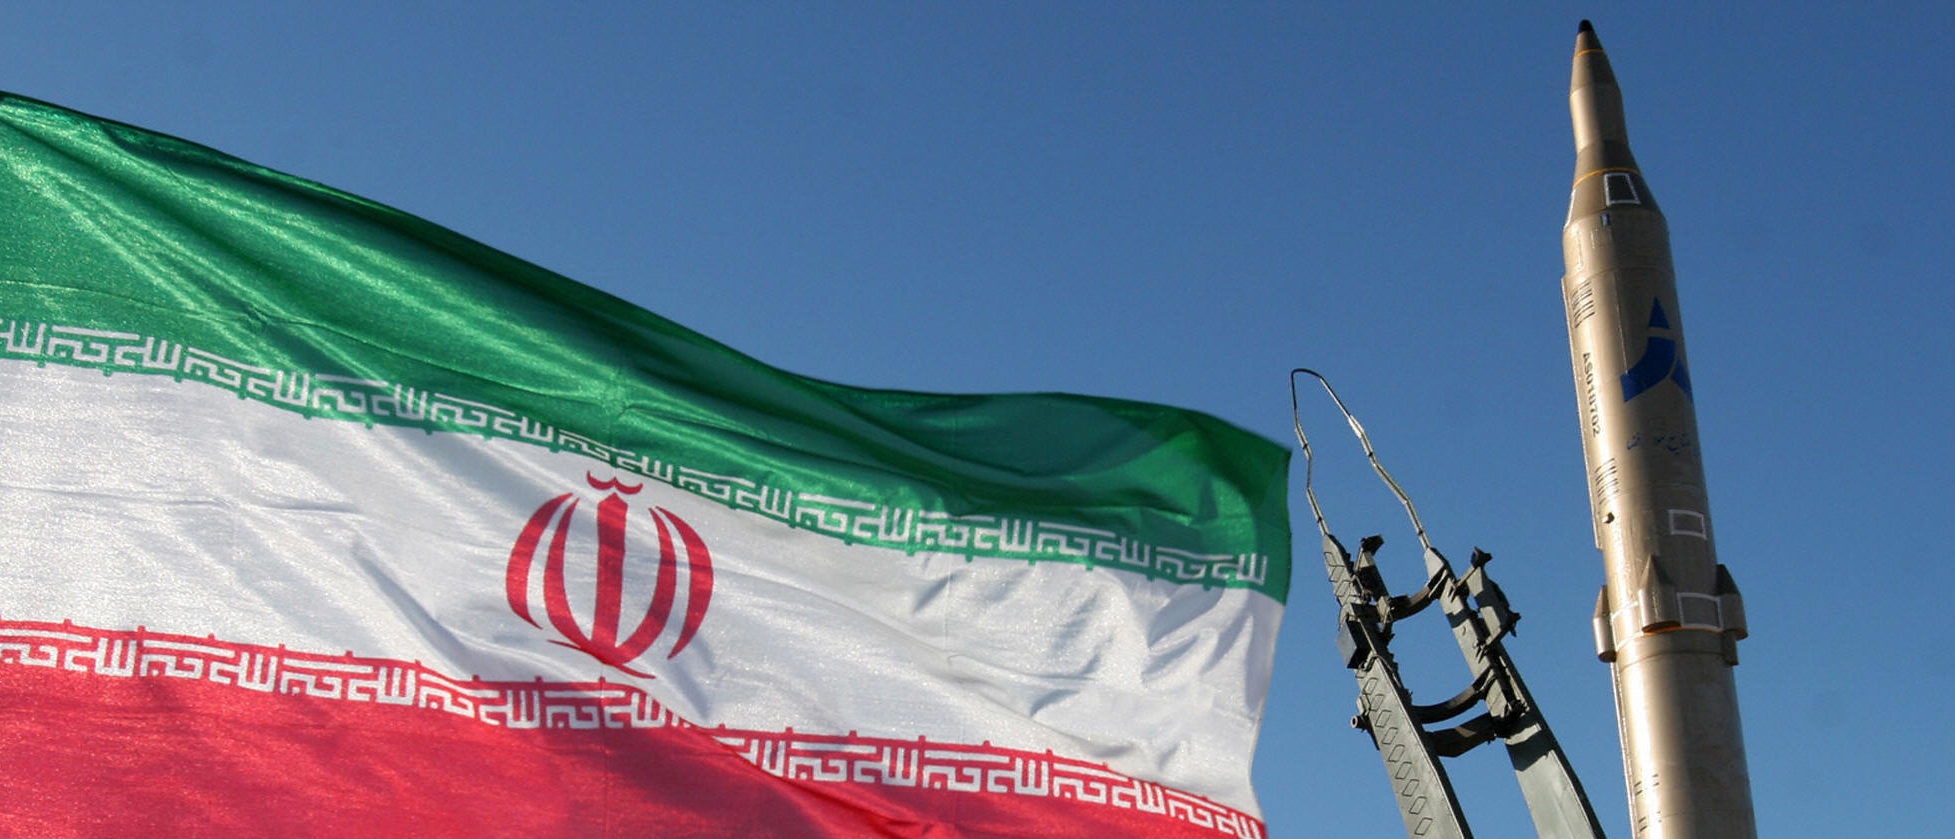 An Iranian flag flutters next to a ground-to-ground Sajil missile before being launched at an undisclosed location in Iran on November 12, 2008. Iran test fired today a new generation of ground-to-ground missile, the semi-official Fars news agency quoted the defence minister as saying. In the past Iran has often boasted of developing new weapons systems only to be met with scepticism from Western defence analysts. (Photo credit should read -/AFP/Getty Images)